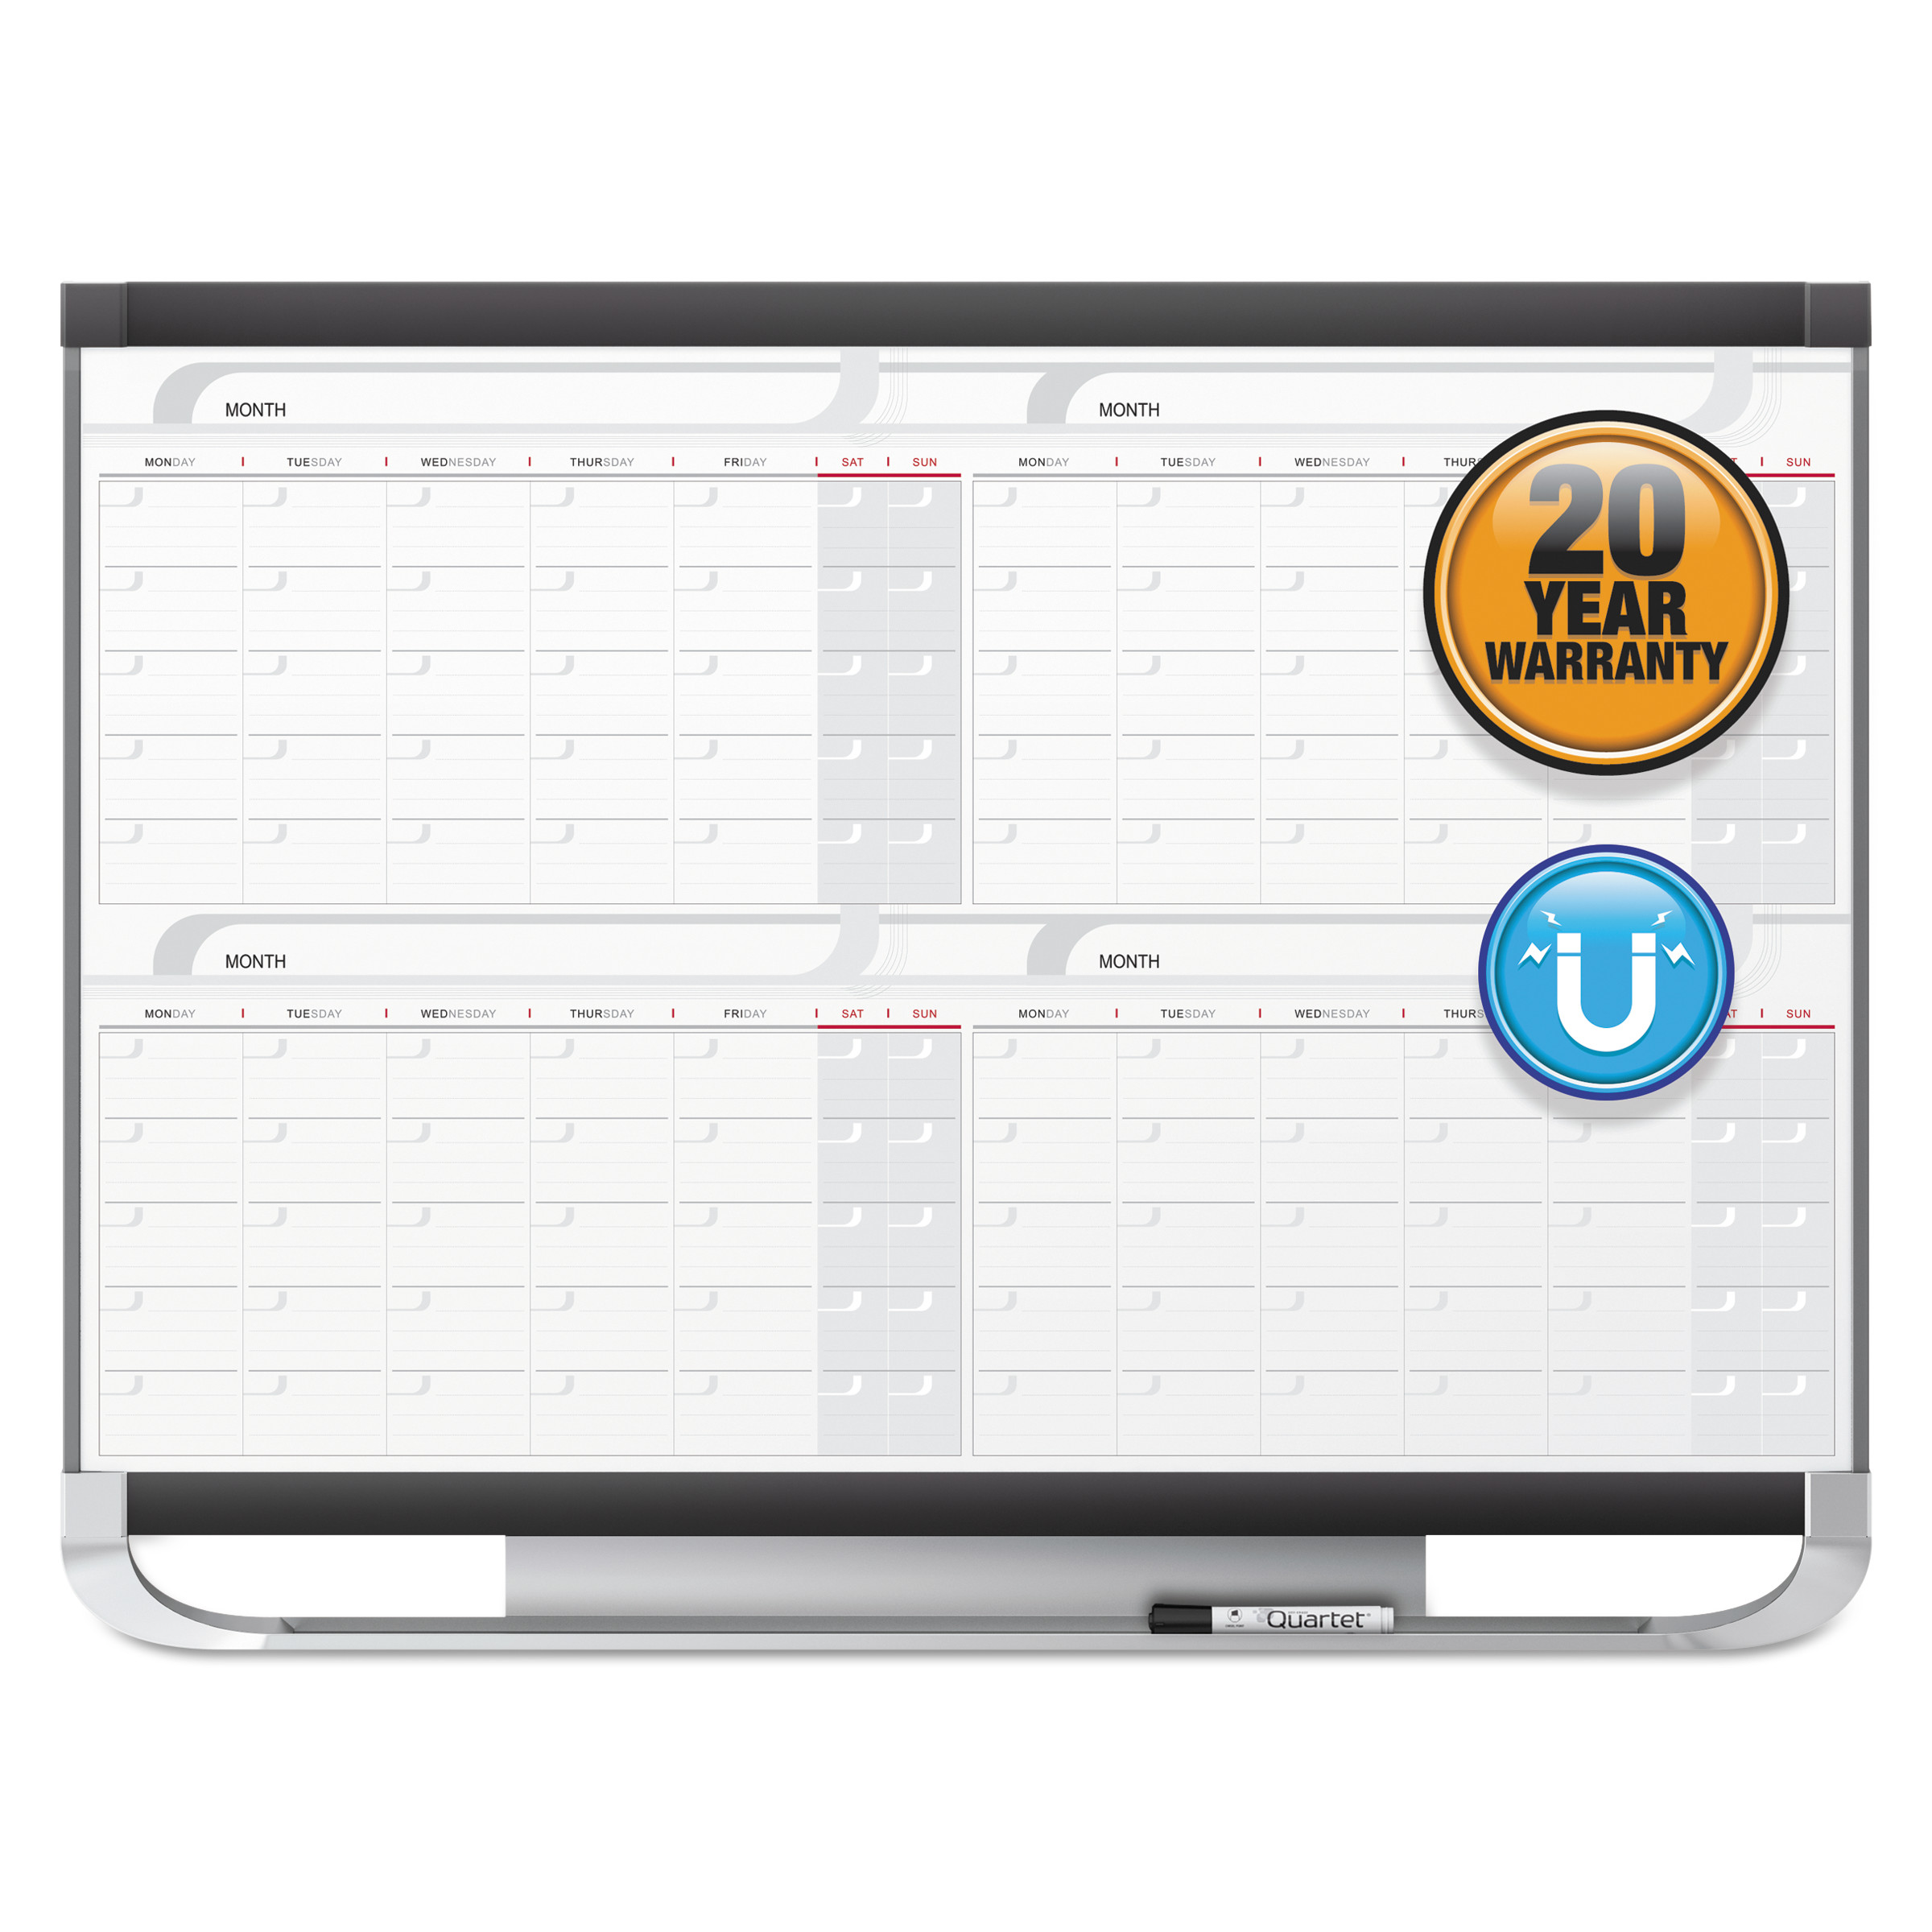 Quartet Prestige 2 Magnetic Total Erase 4-Month Calendar, 36 x 24, Graphite Color Frame -QRT4MCP23P2